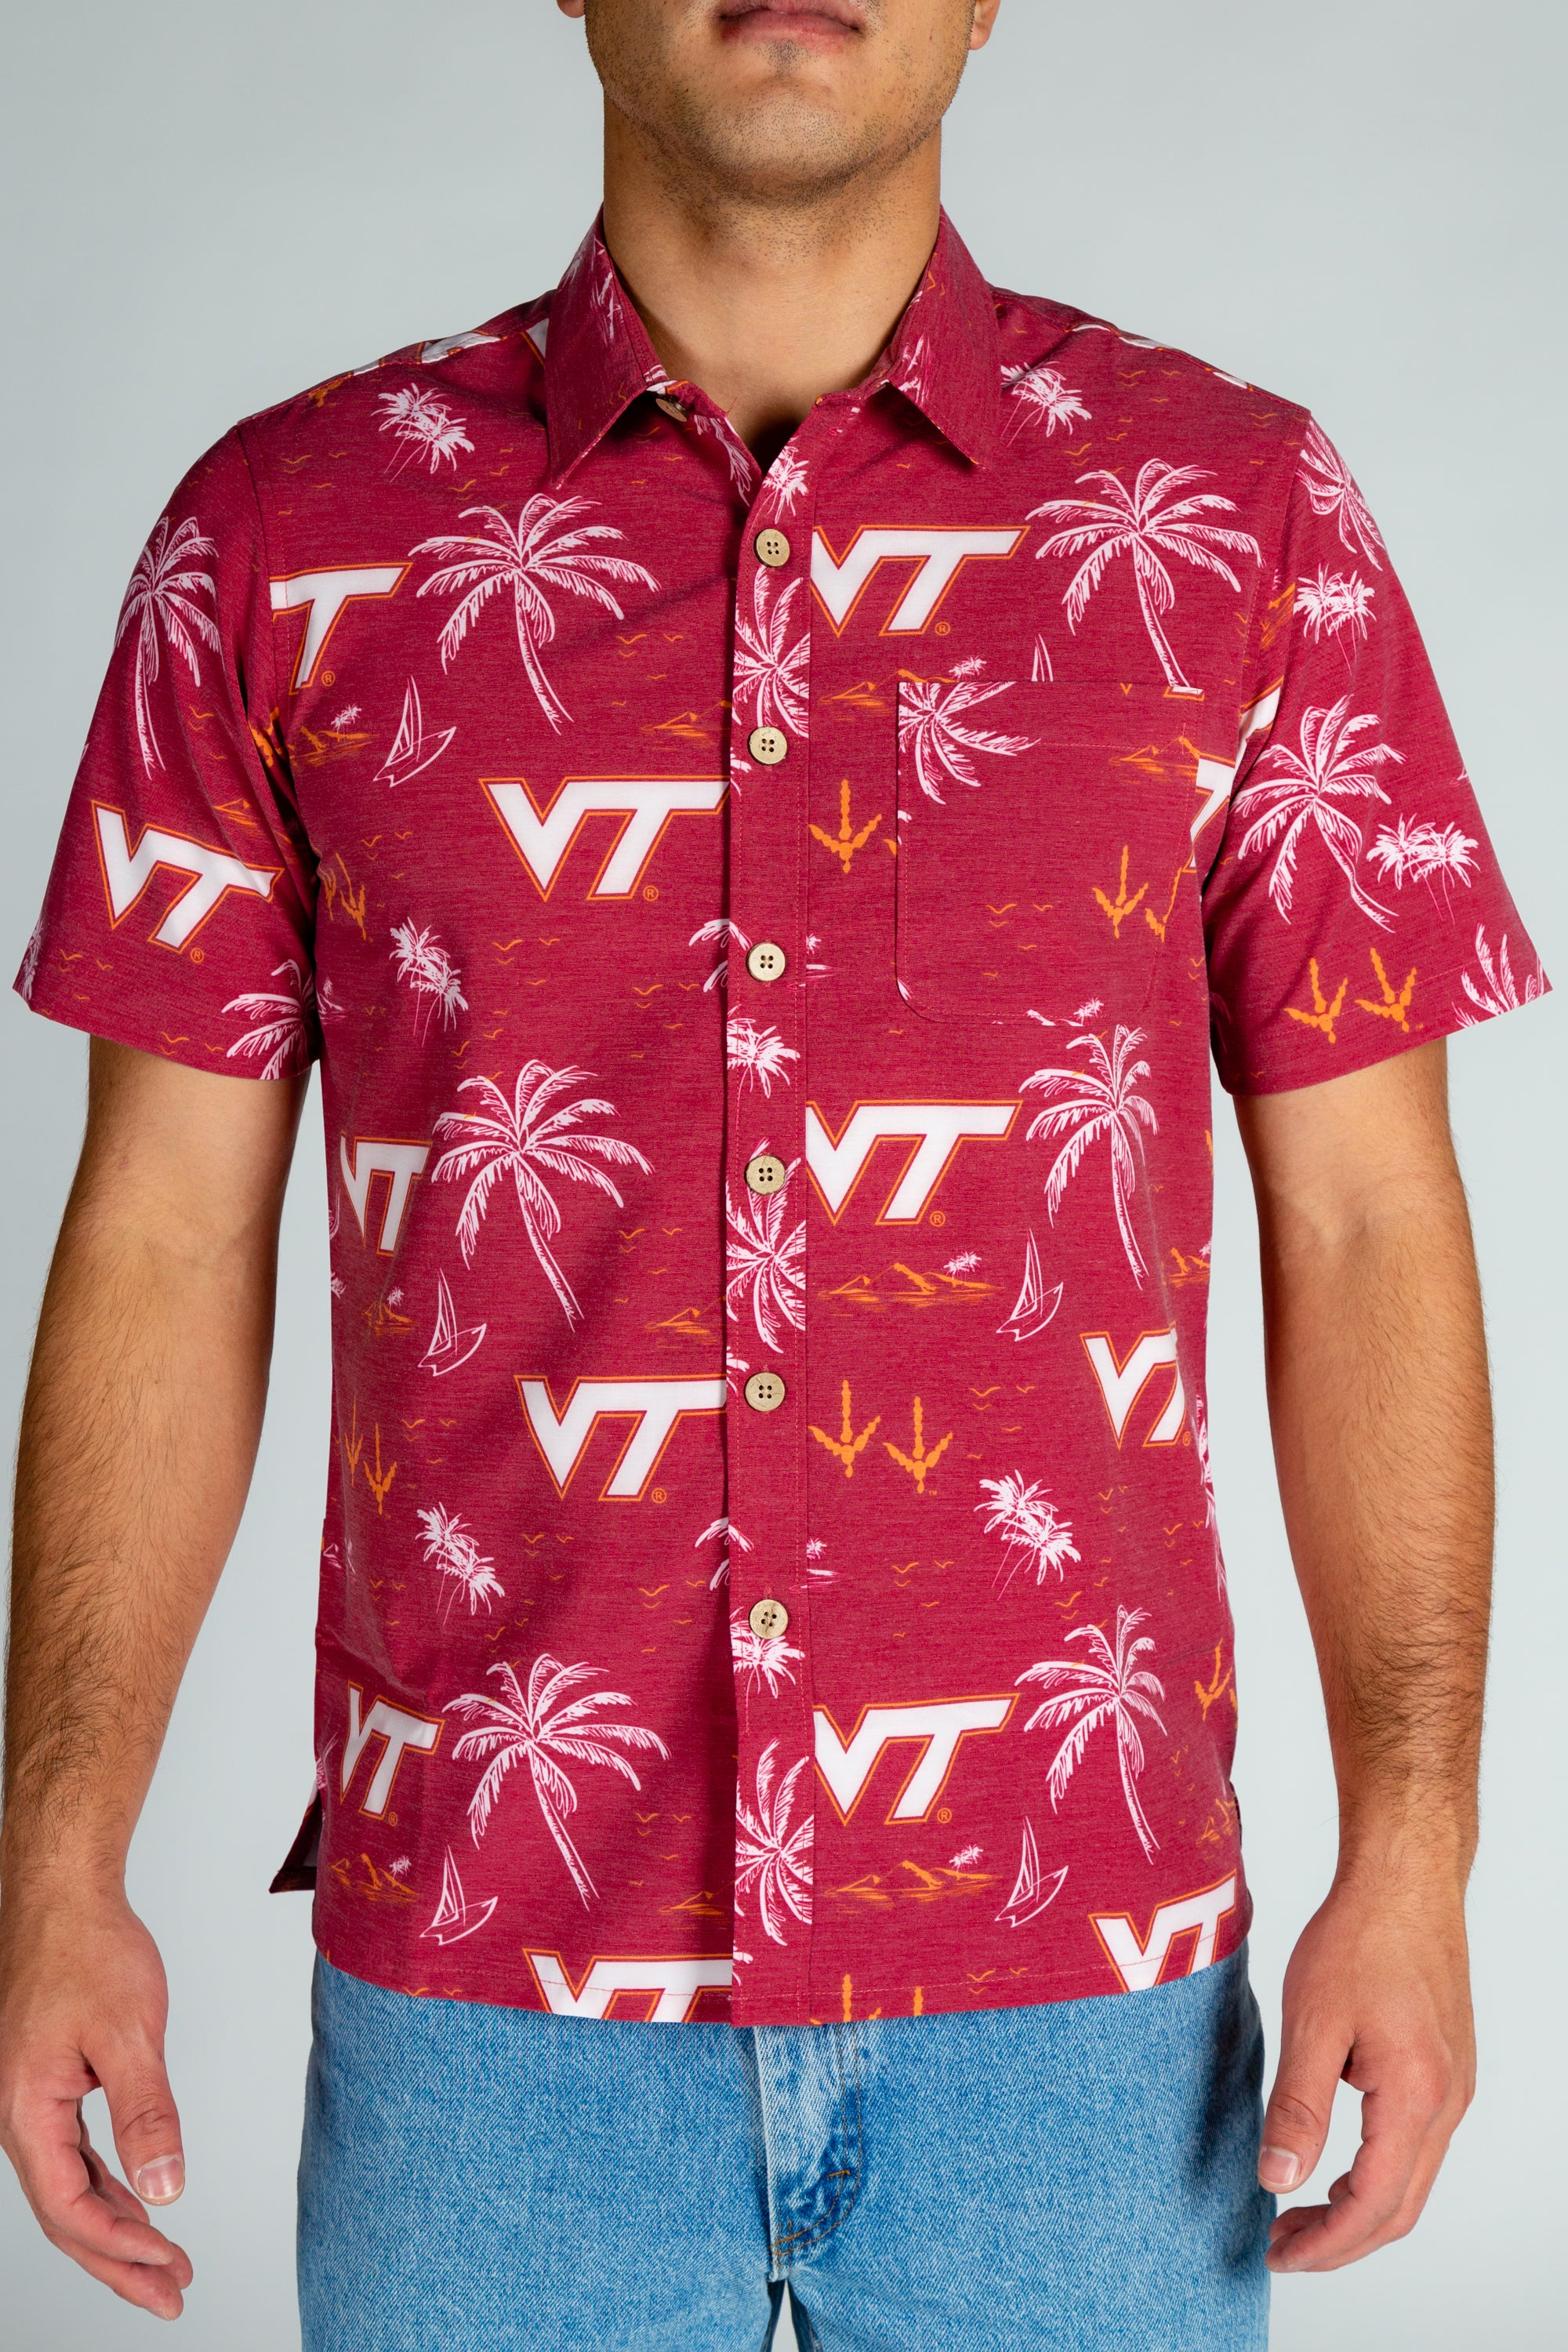 VT Men's Hawaiian Shirt